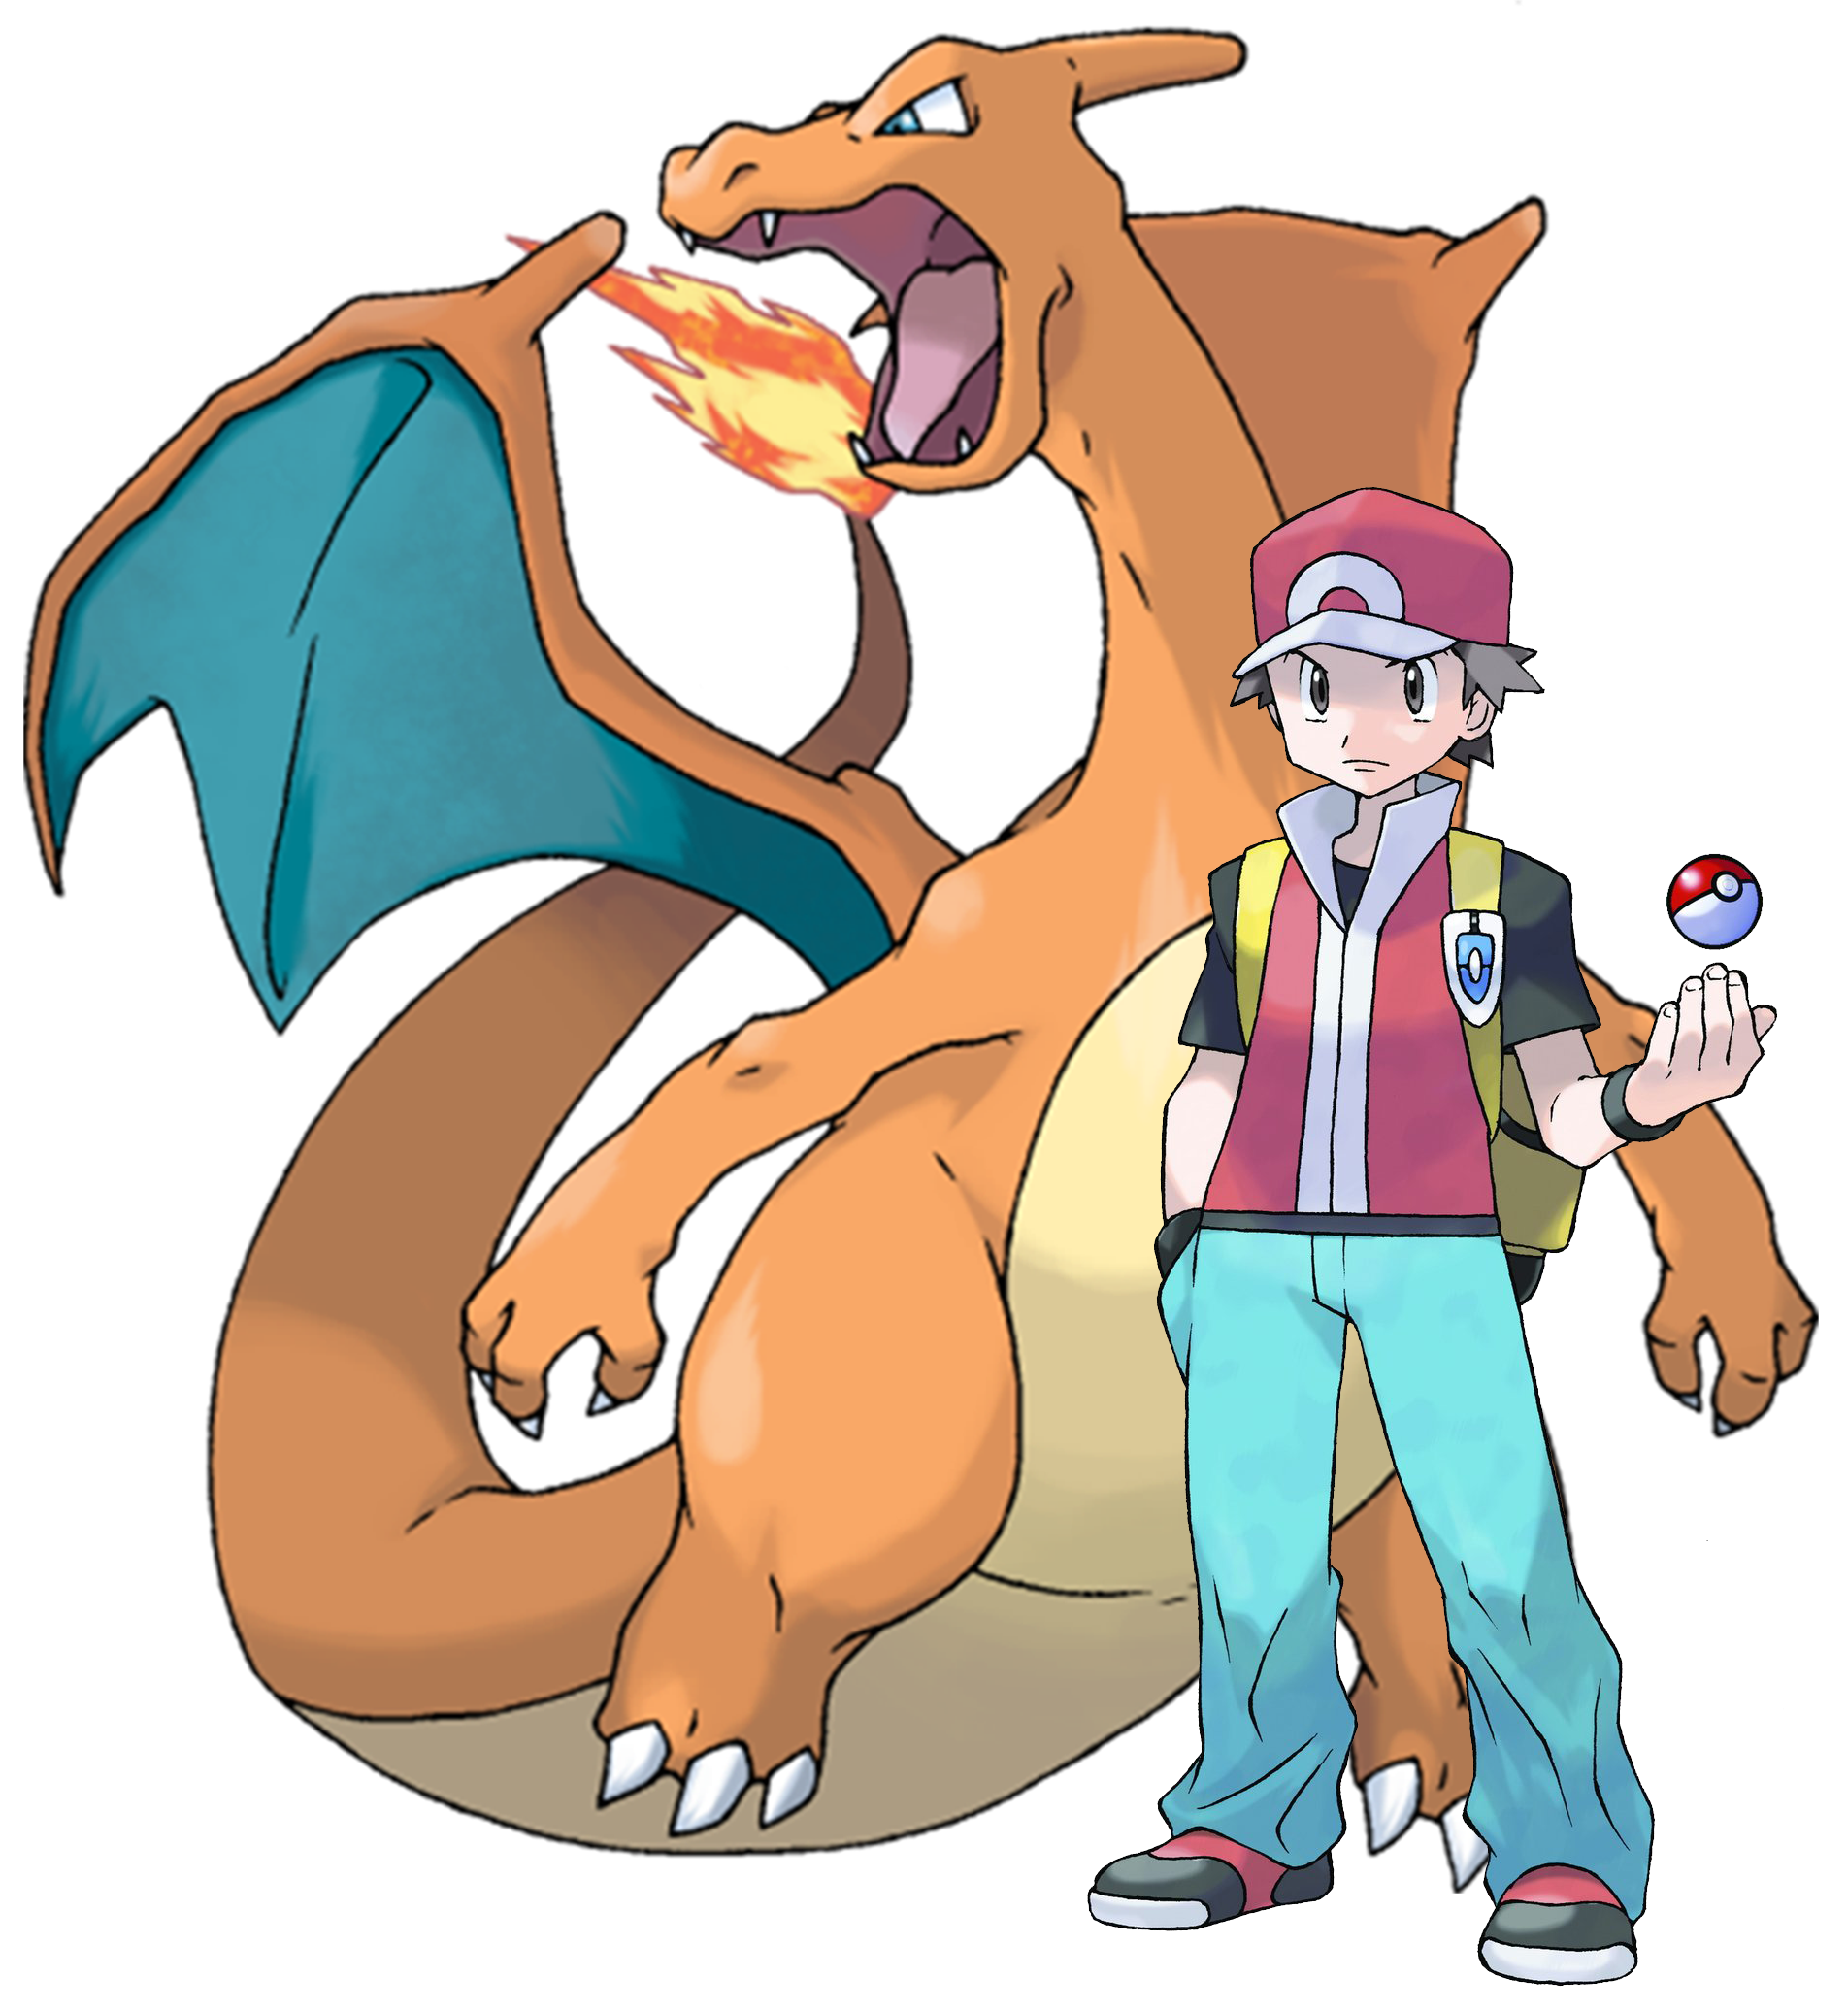 Image red death battle. Charizard png picture